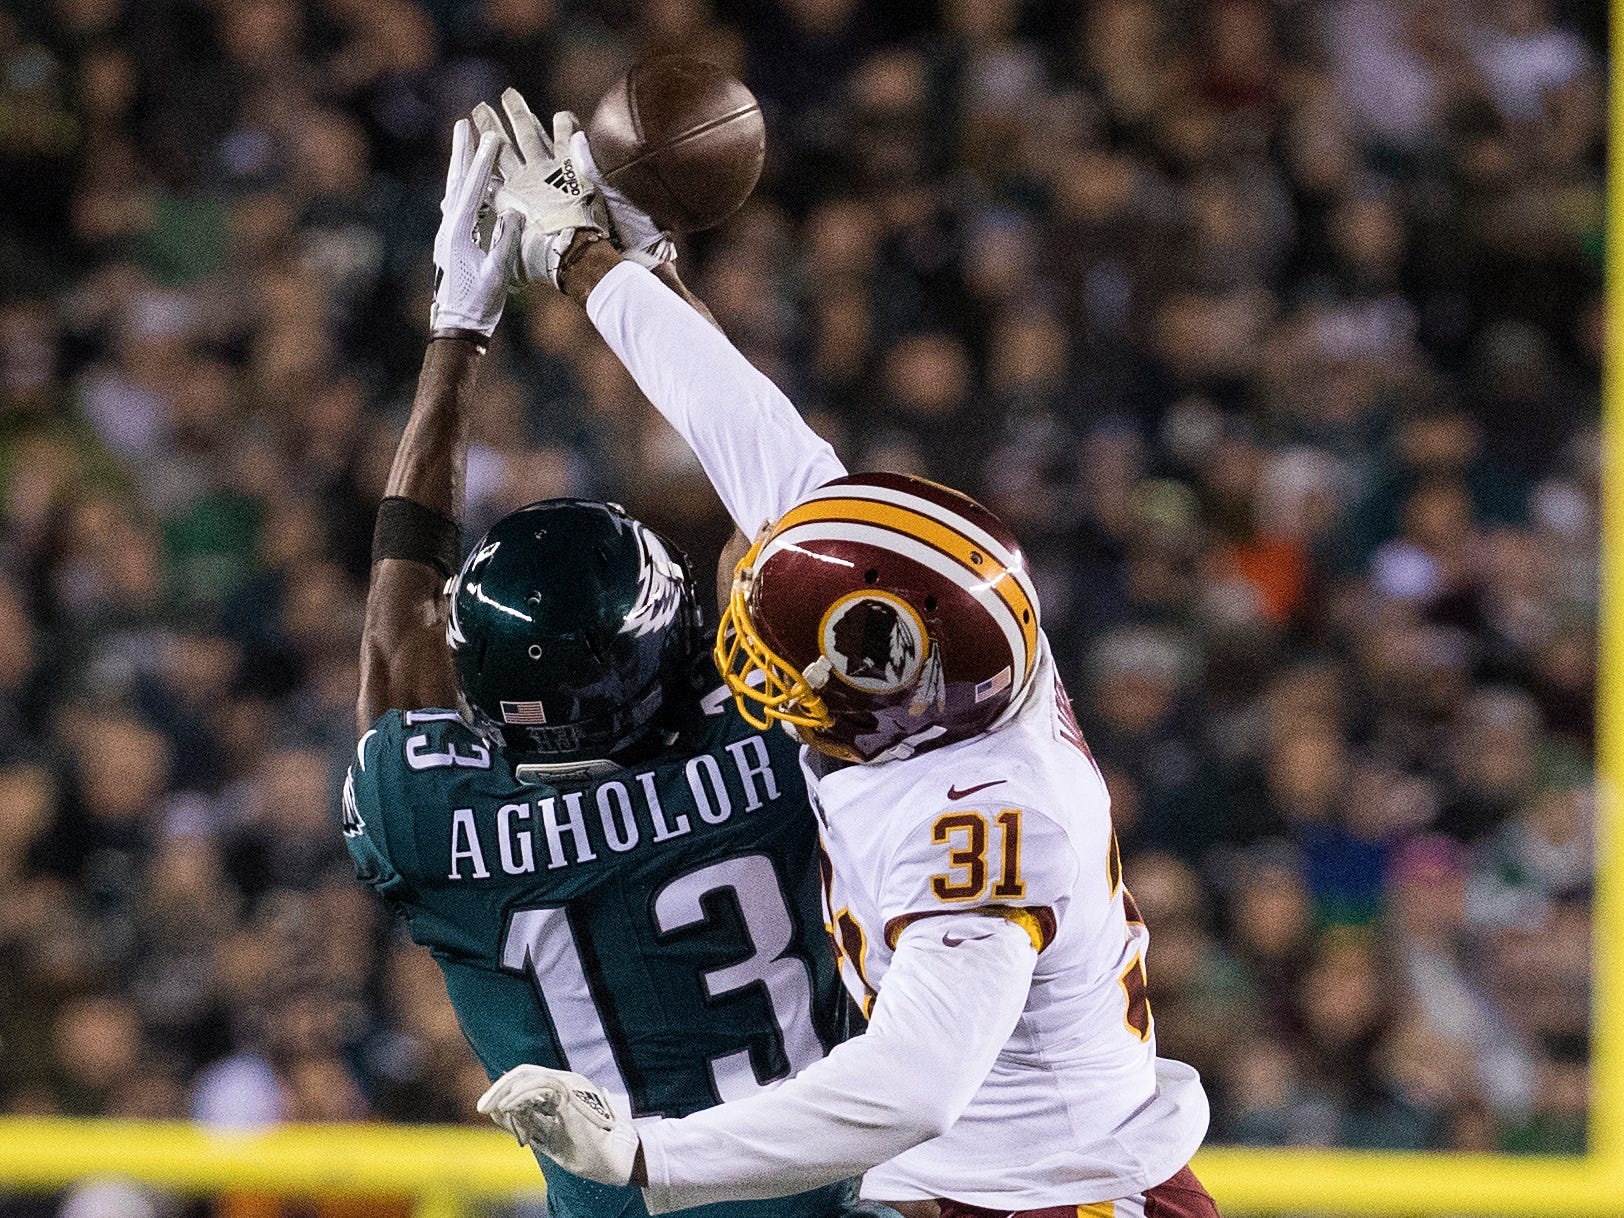 Eagles' Nelson Agholor (13) battles with Washington's Fabian Moreau (31) for a reception Monday night.